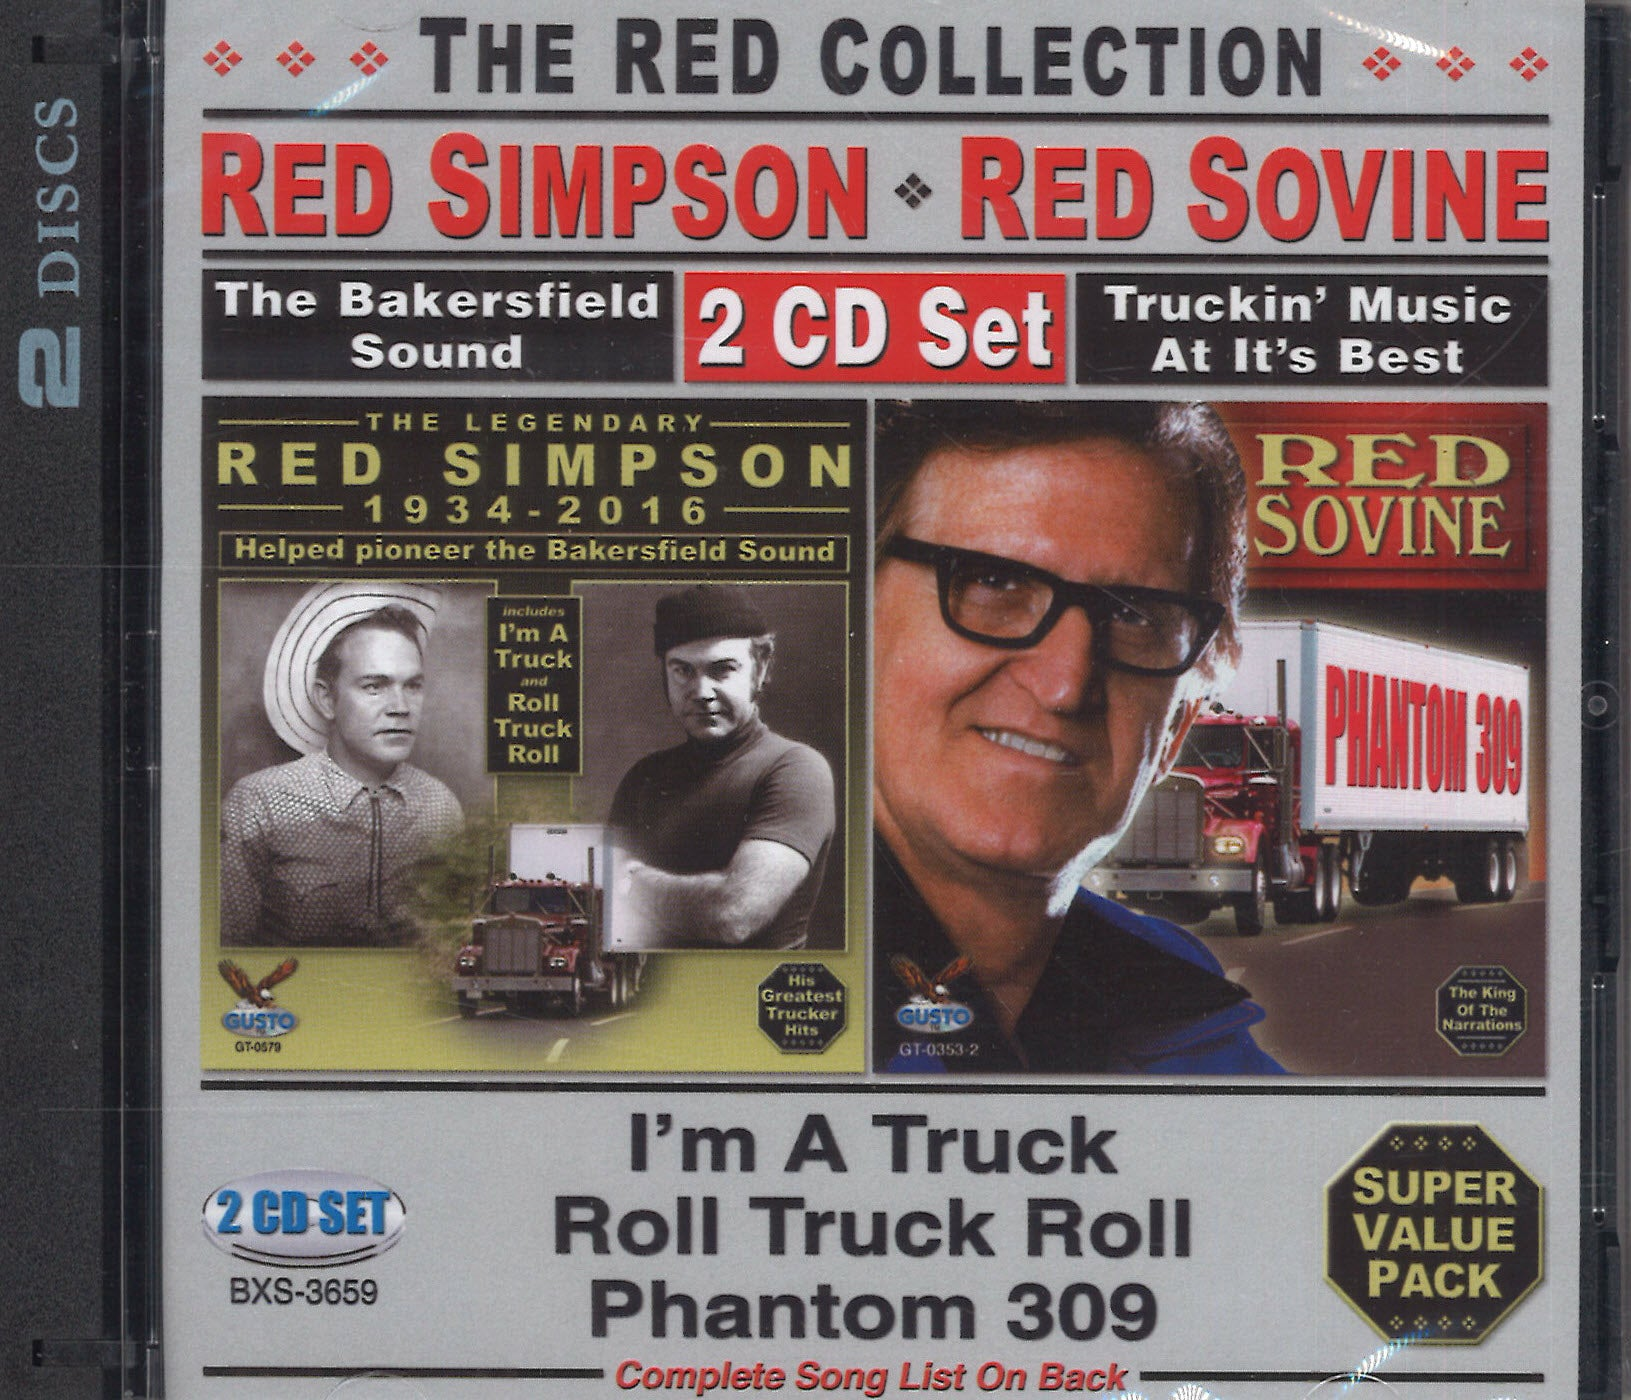 Red Sovine & Red Simpson The Red Collection: 2 CD Set